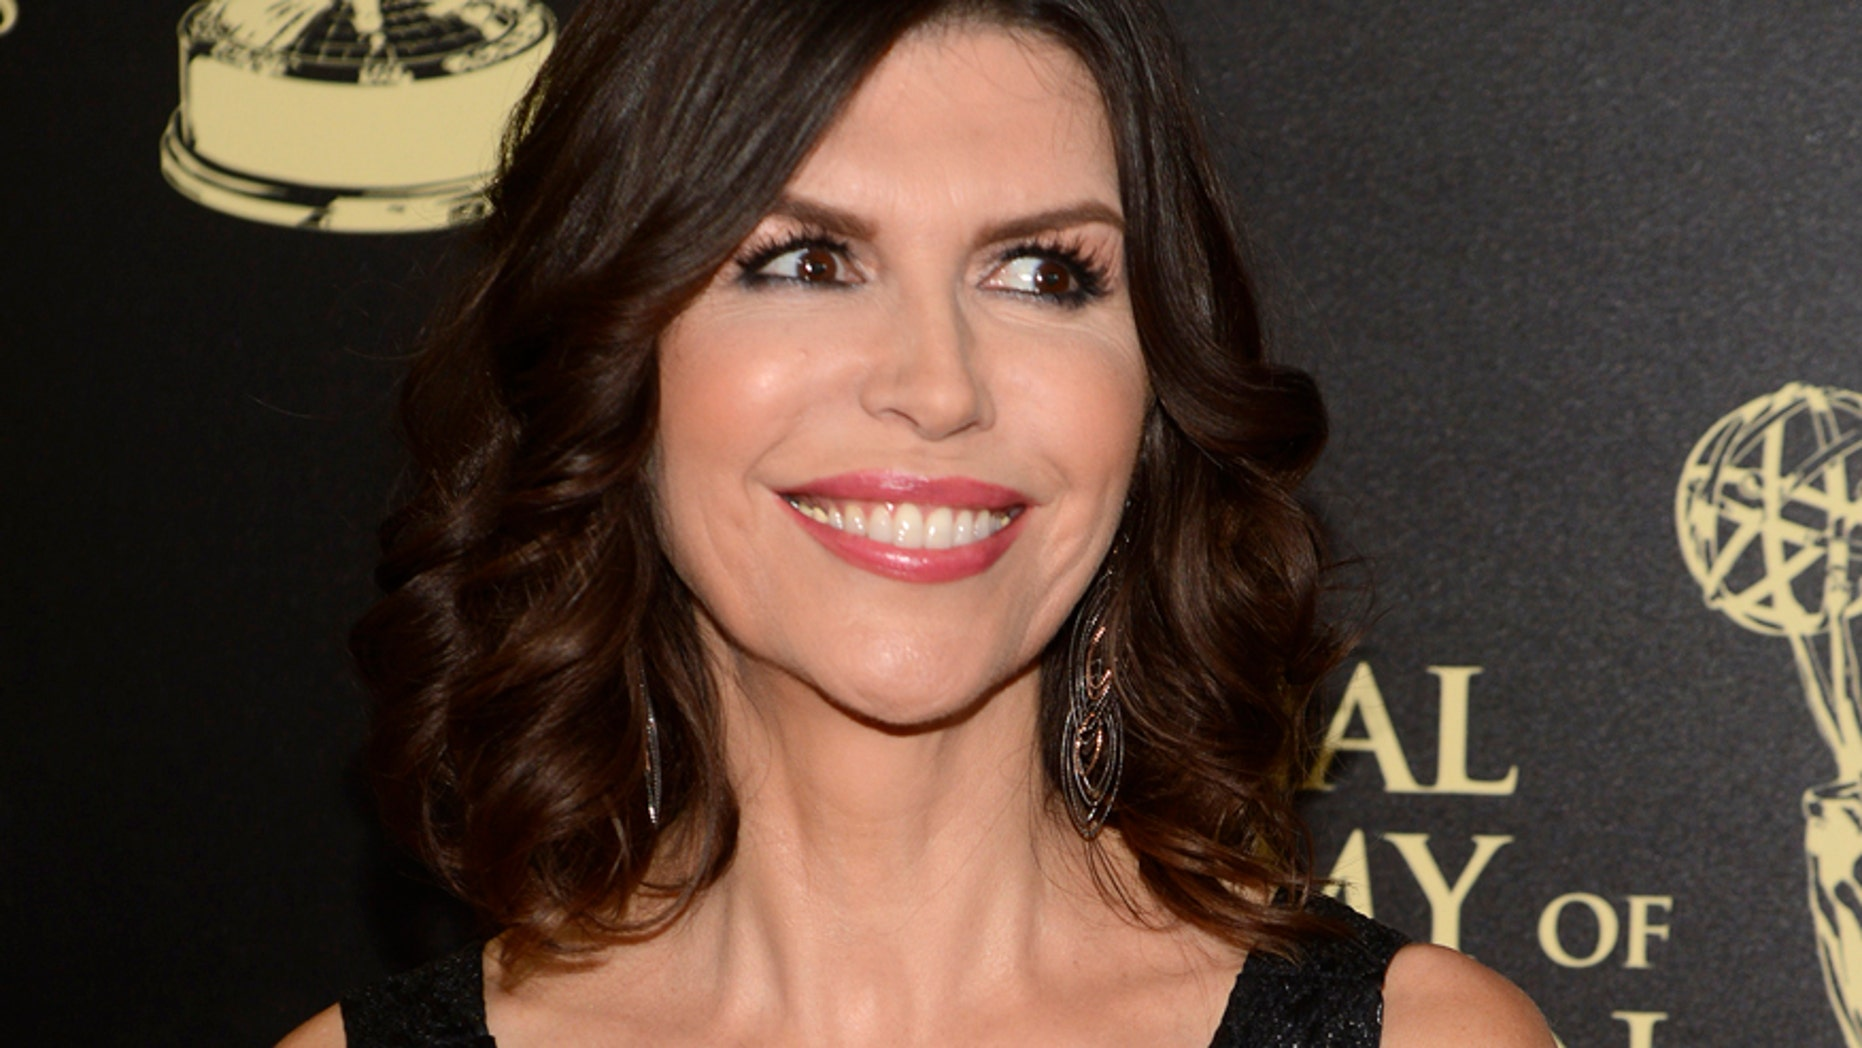 finola hughes imdbfinola hughes youtube, finola hughes net worth, finola hughes, finola hughes general hospital, finola hughes emma frost, finola hughes age, finola hughes husband, finola hughes instagram, finola hughes family, finola hughes staying alive, finola hughes twitter, finola hughes twin sister, finola hughes feet, finola hughes family pictures, finola hughes cats, finola hughes imdb, finola hughes charmed, finola hughes movies, finola hughes 2019, finola hughes haircut